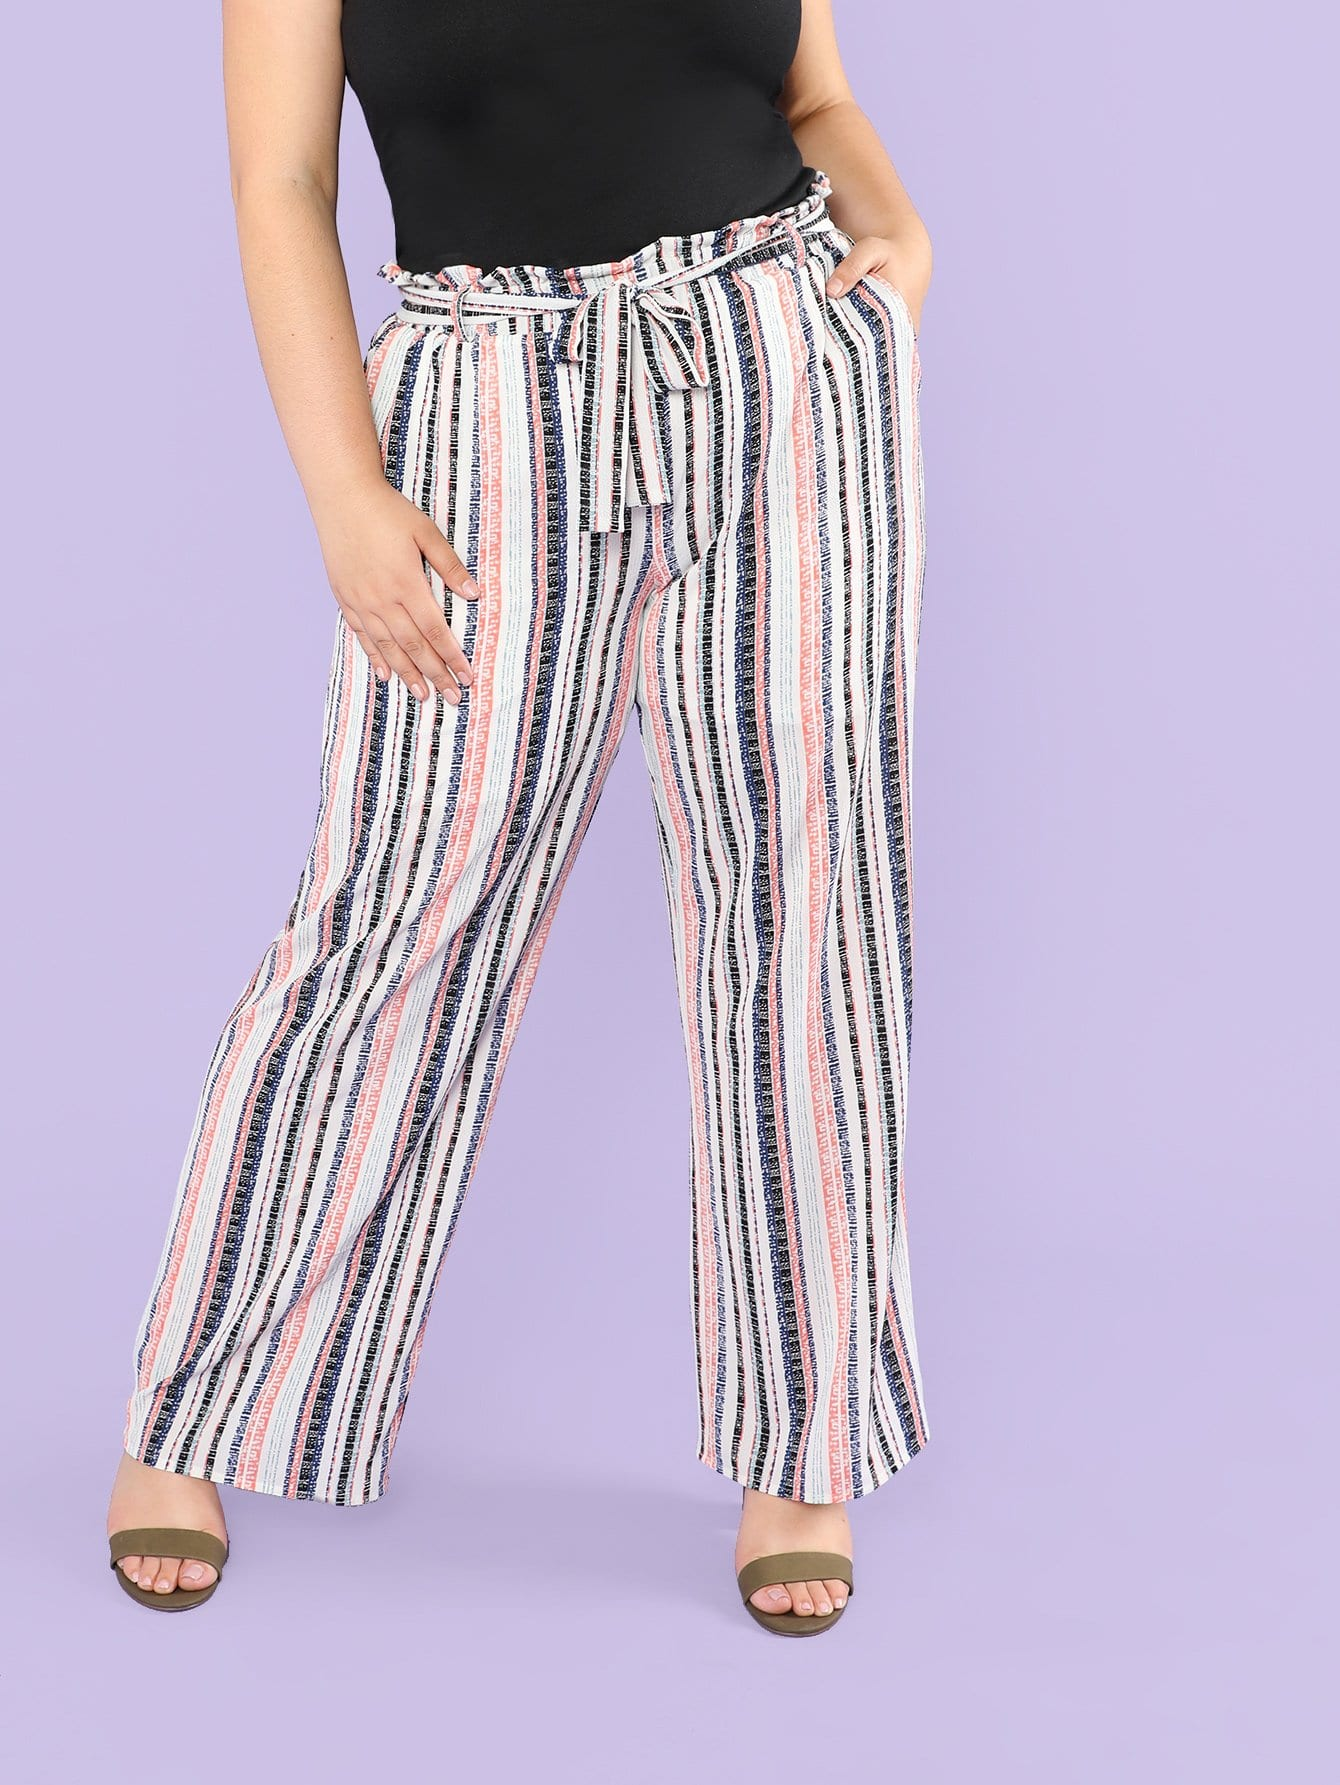 Frill Waist Belted Striped Wide Leg Pants tango tango mattathiah 2